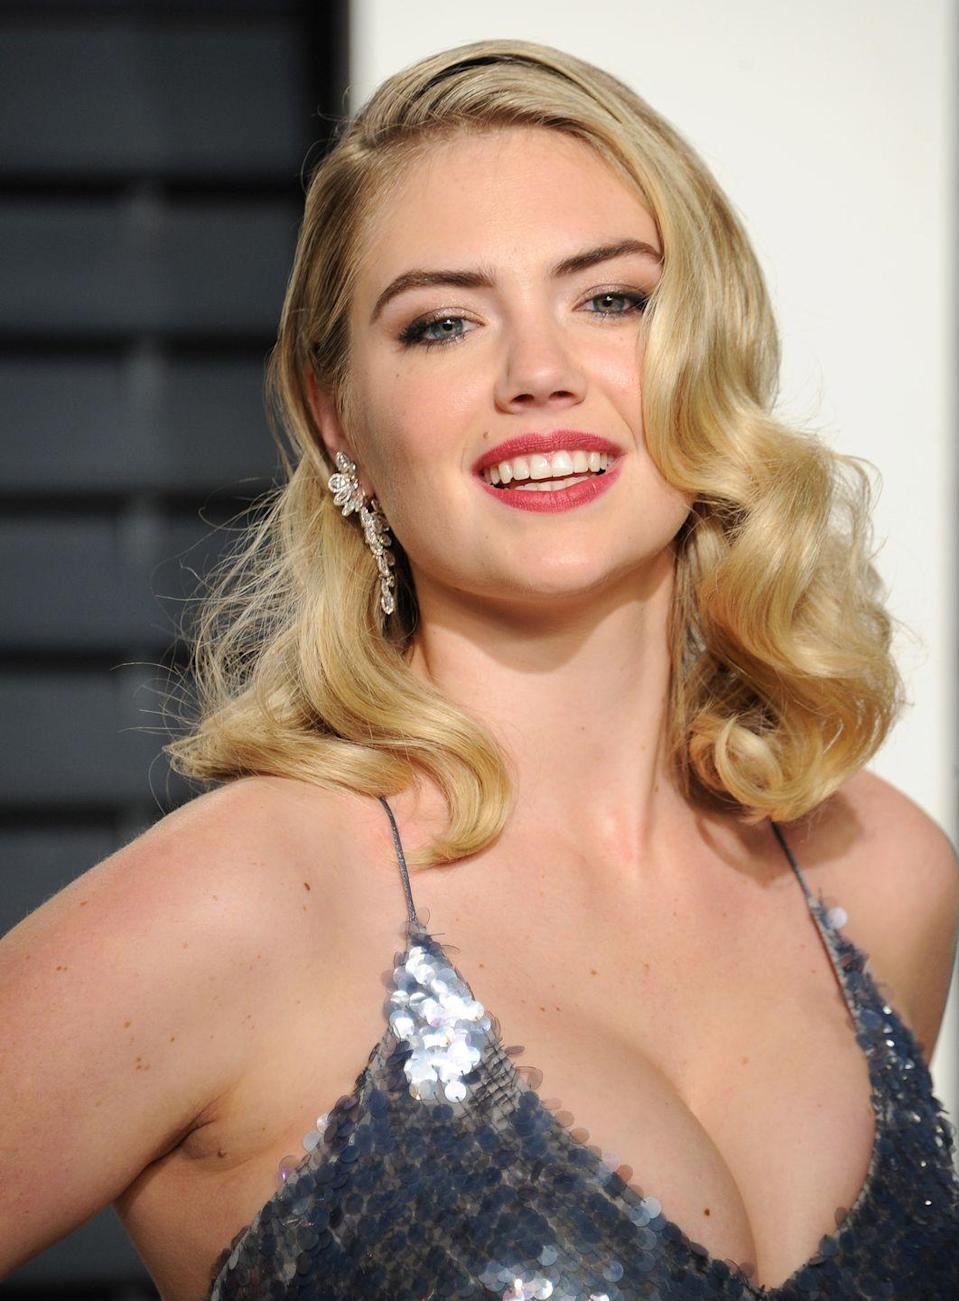 <p>Old Hollywood curls complement round faces because they always fall in the perfect place. Kate Upton is giving major Marilyn Monroe vibes. </p>